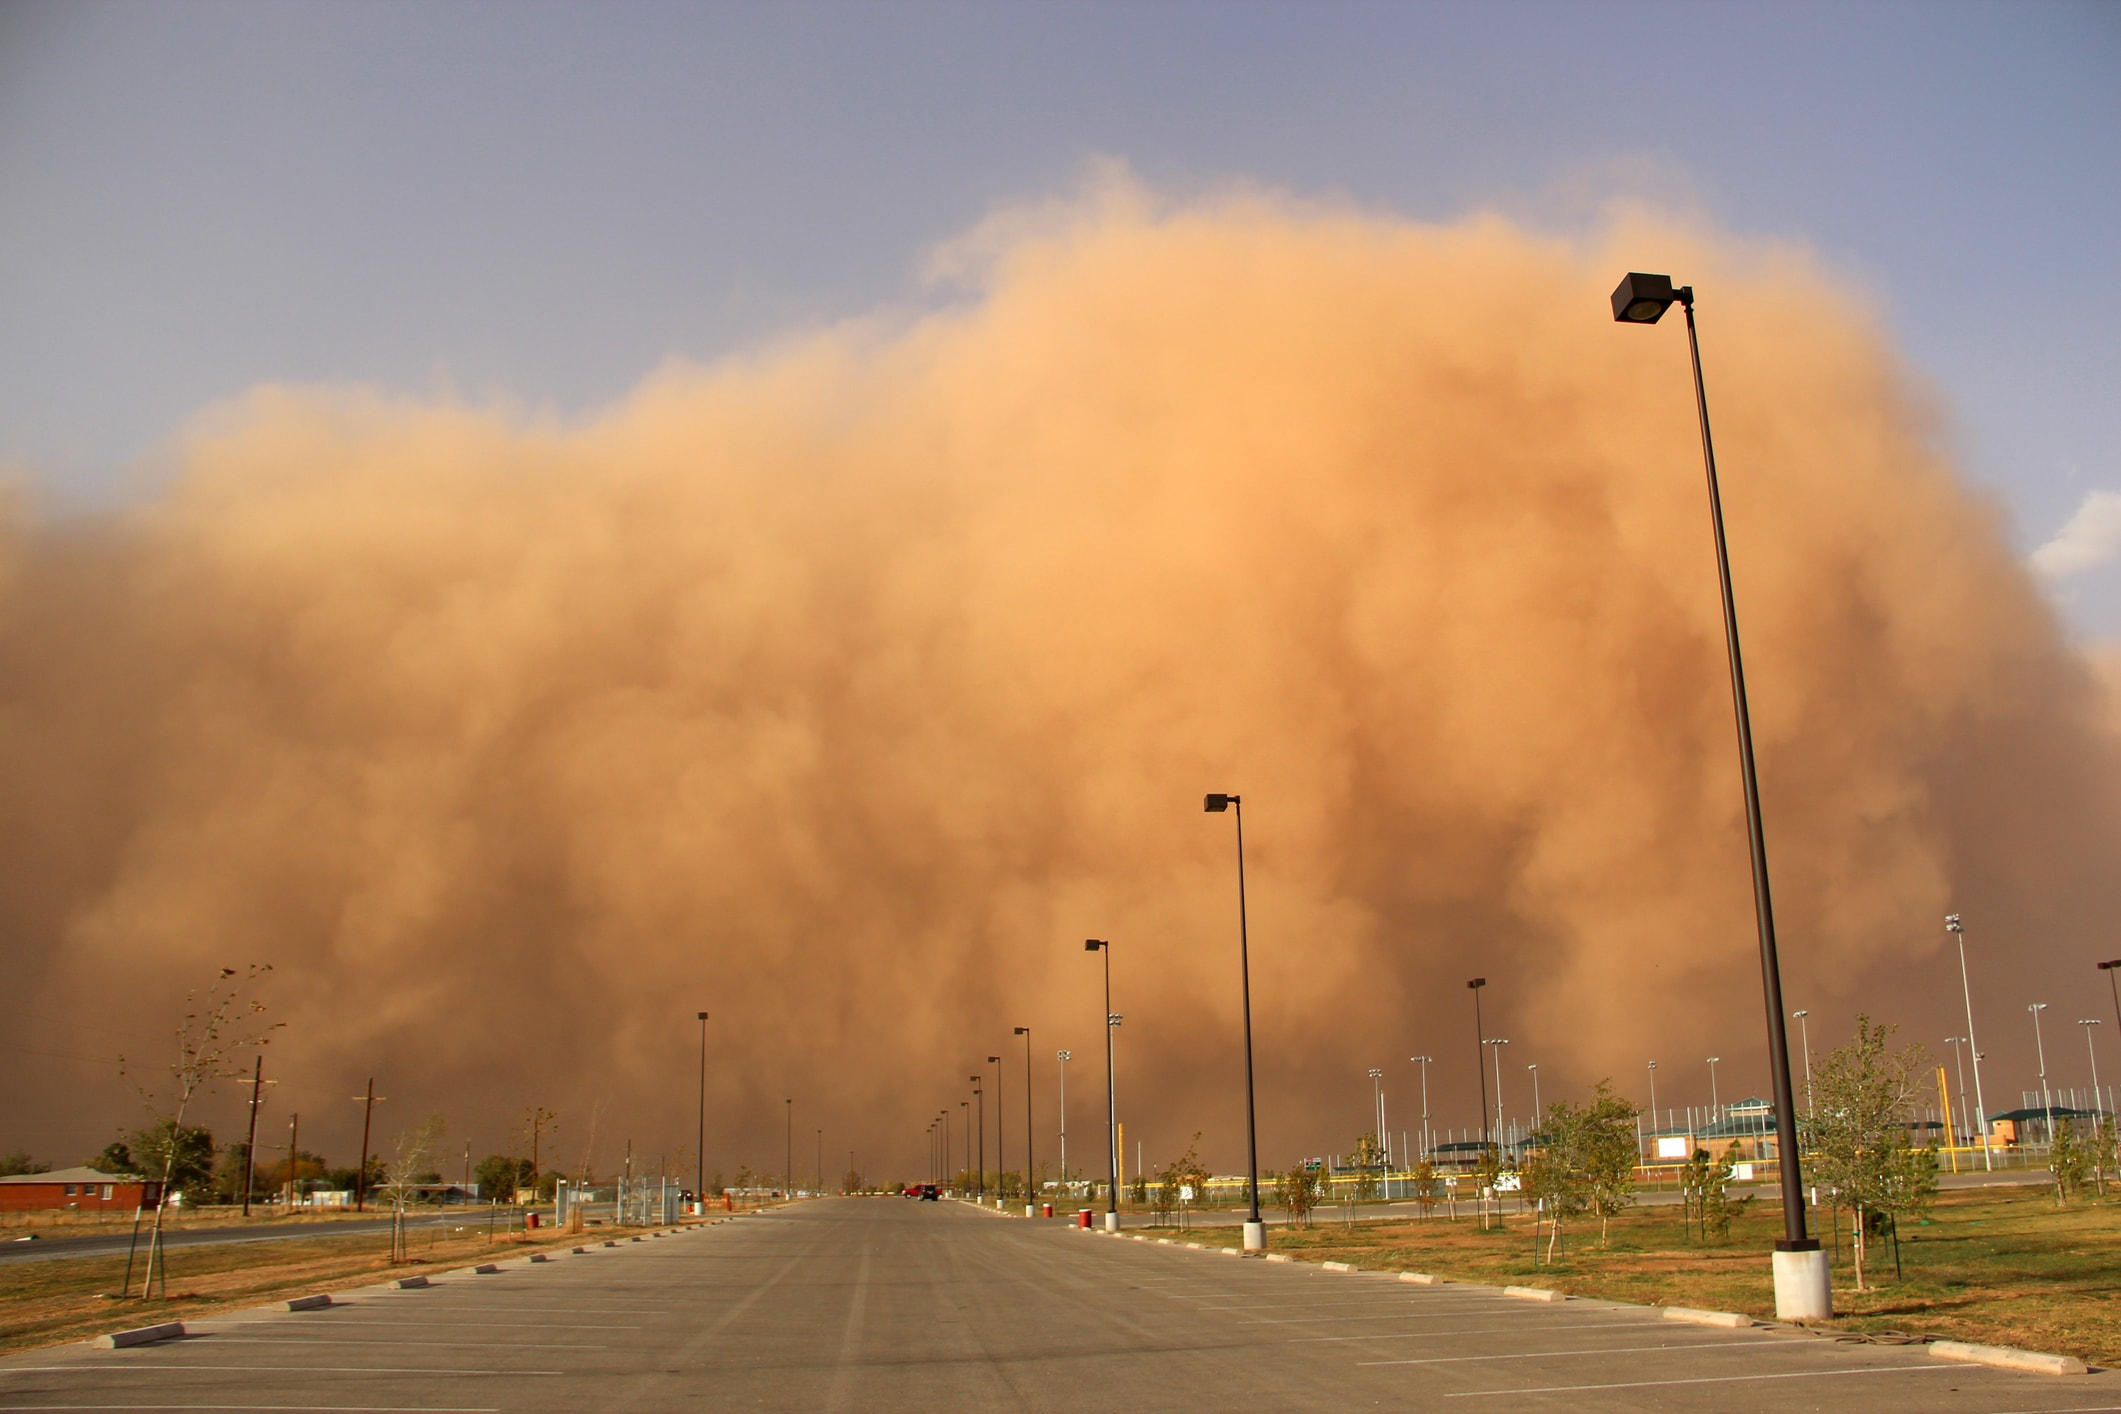 driving in a haboob